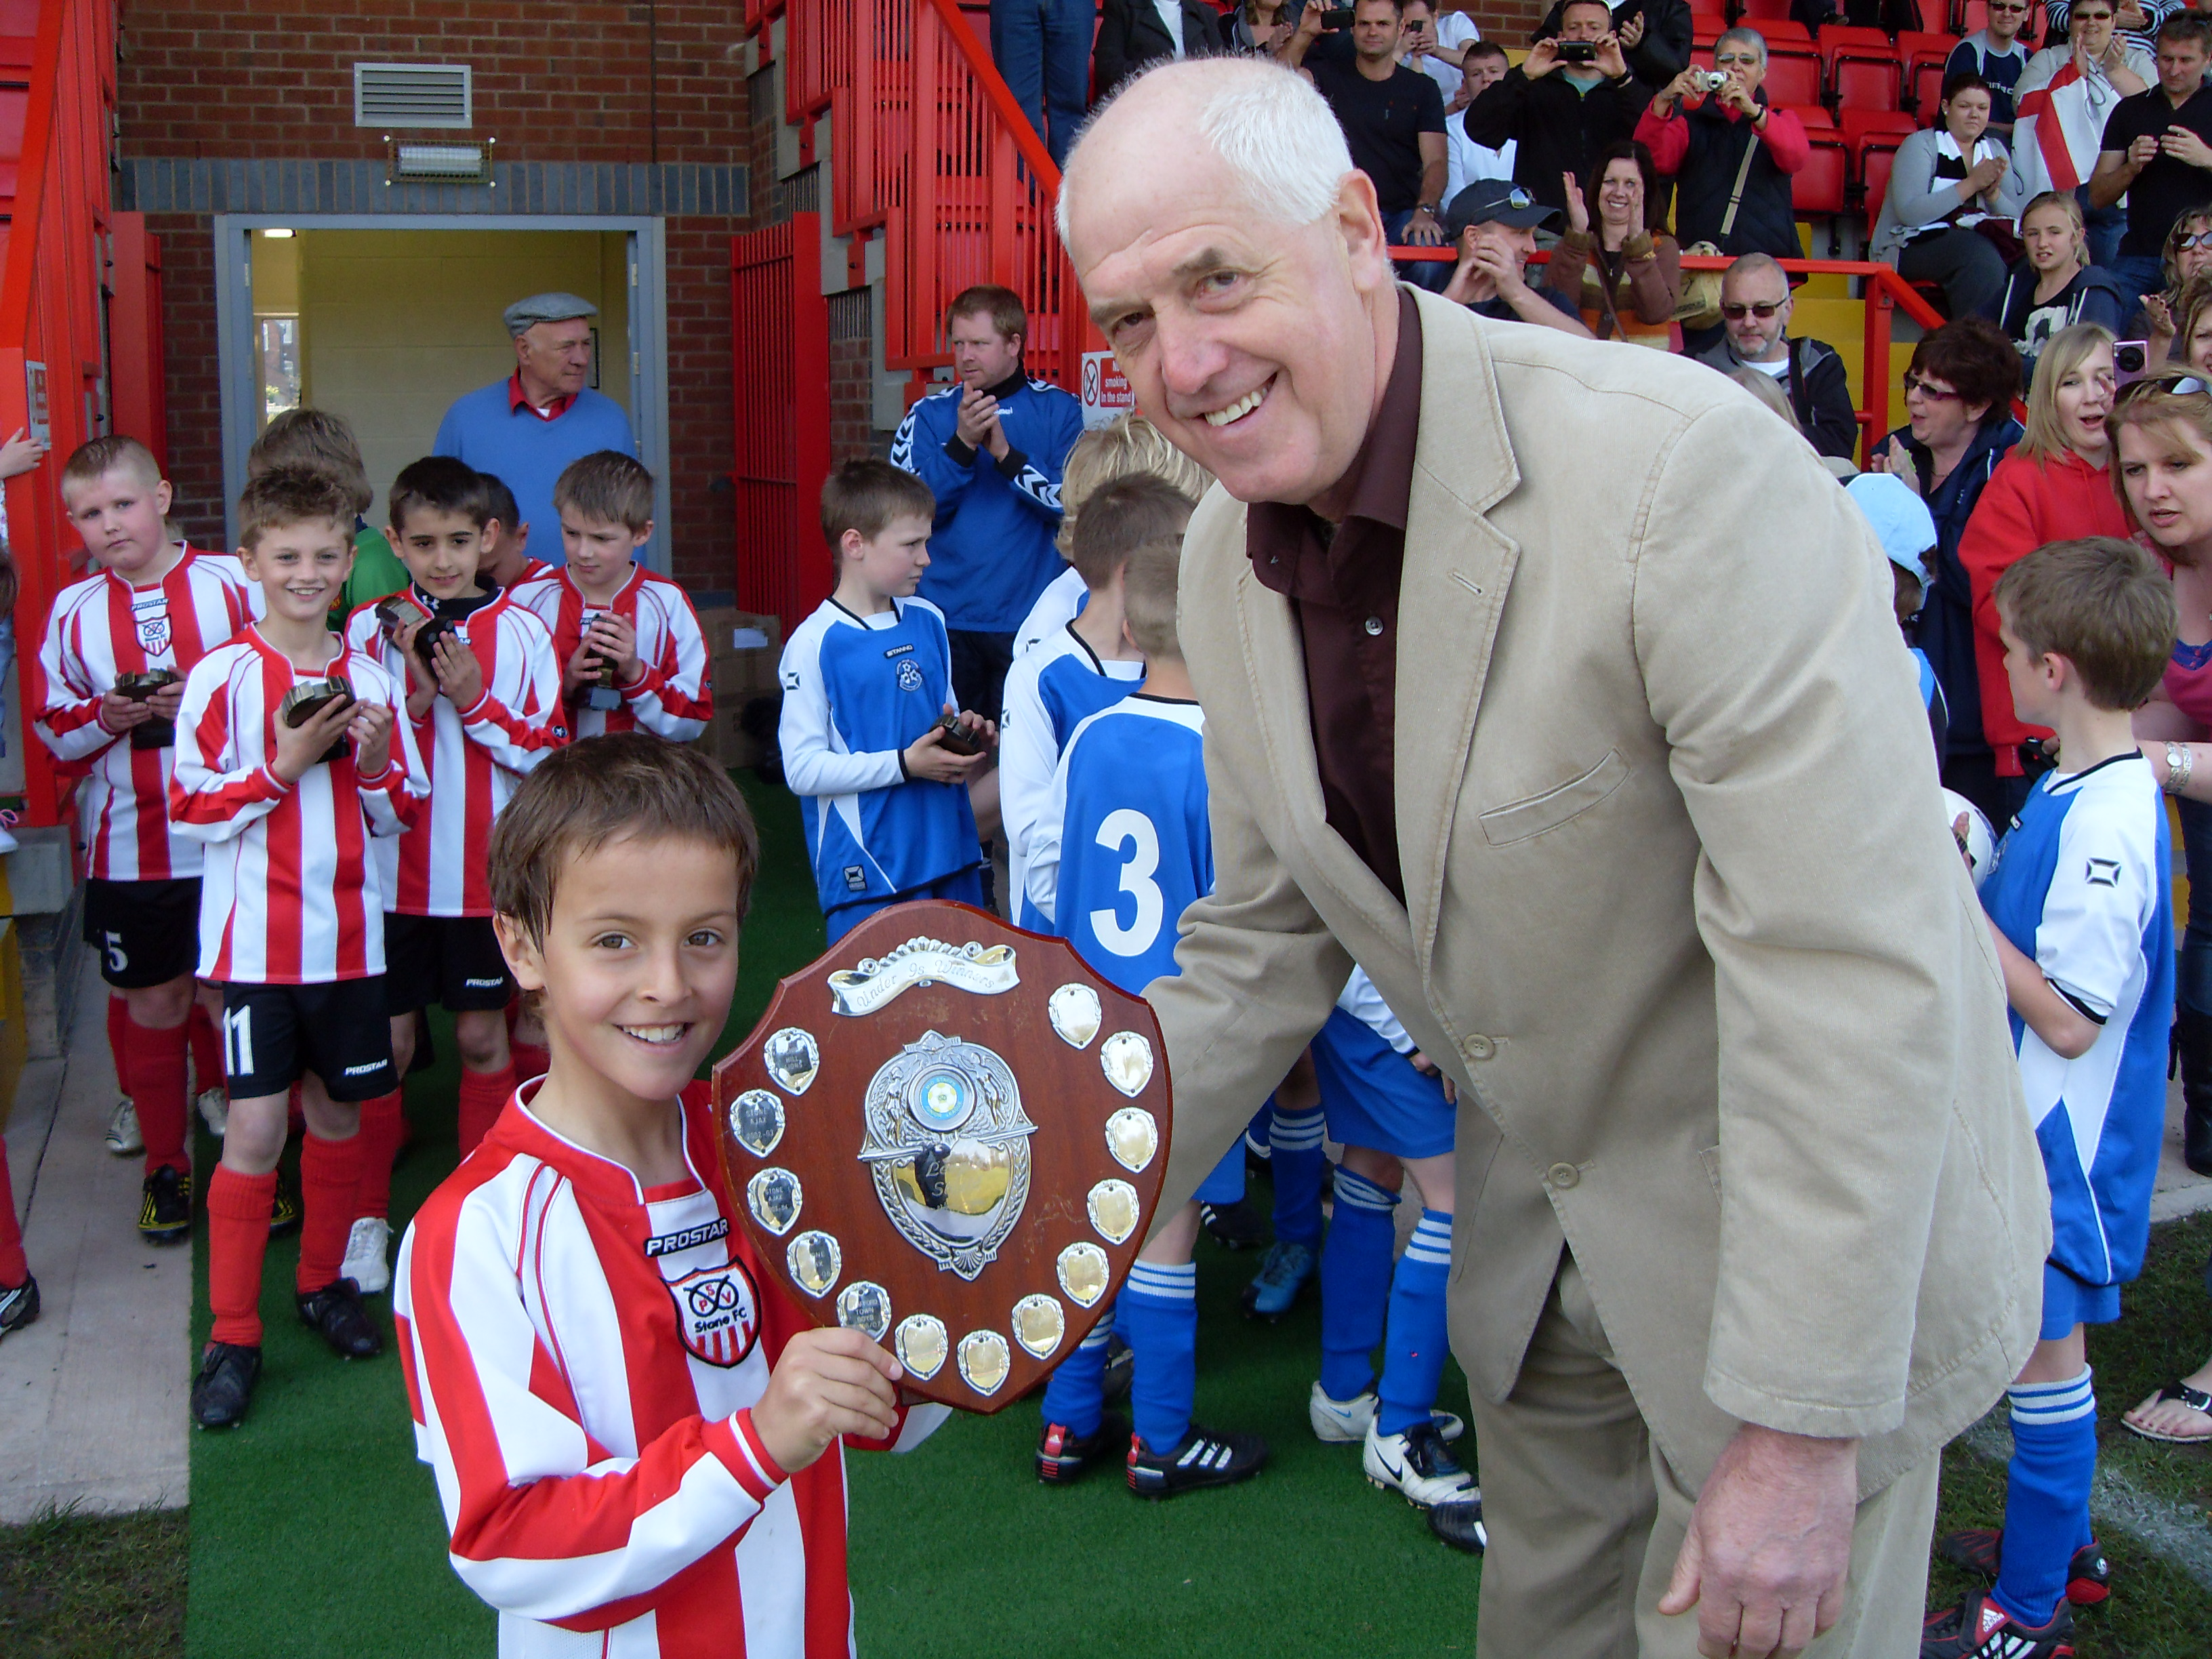 PSV Stone captain winners under 9s Shield with Gordon Evans